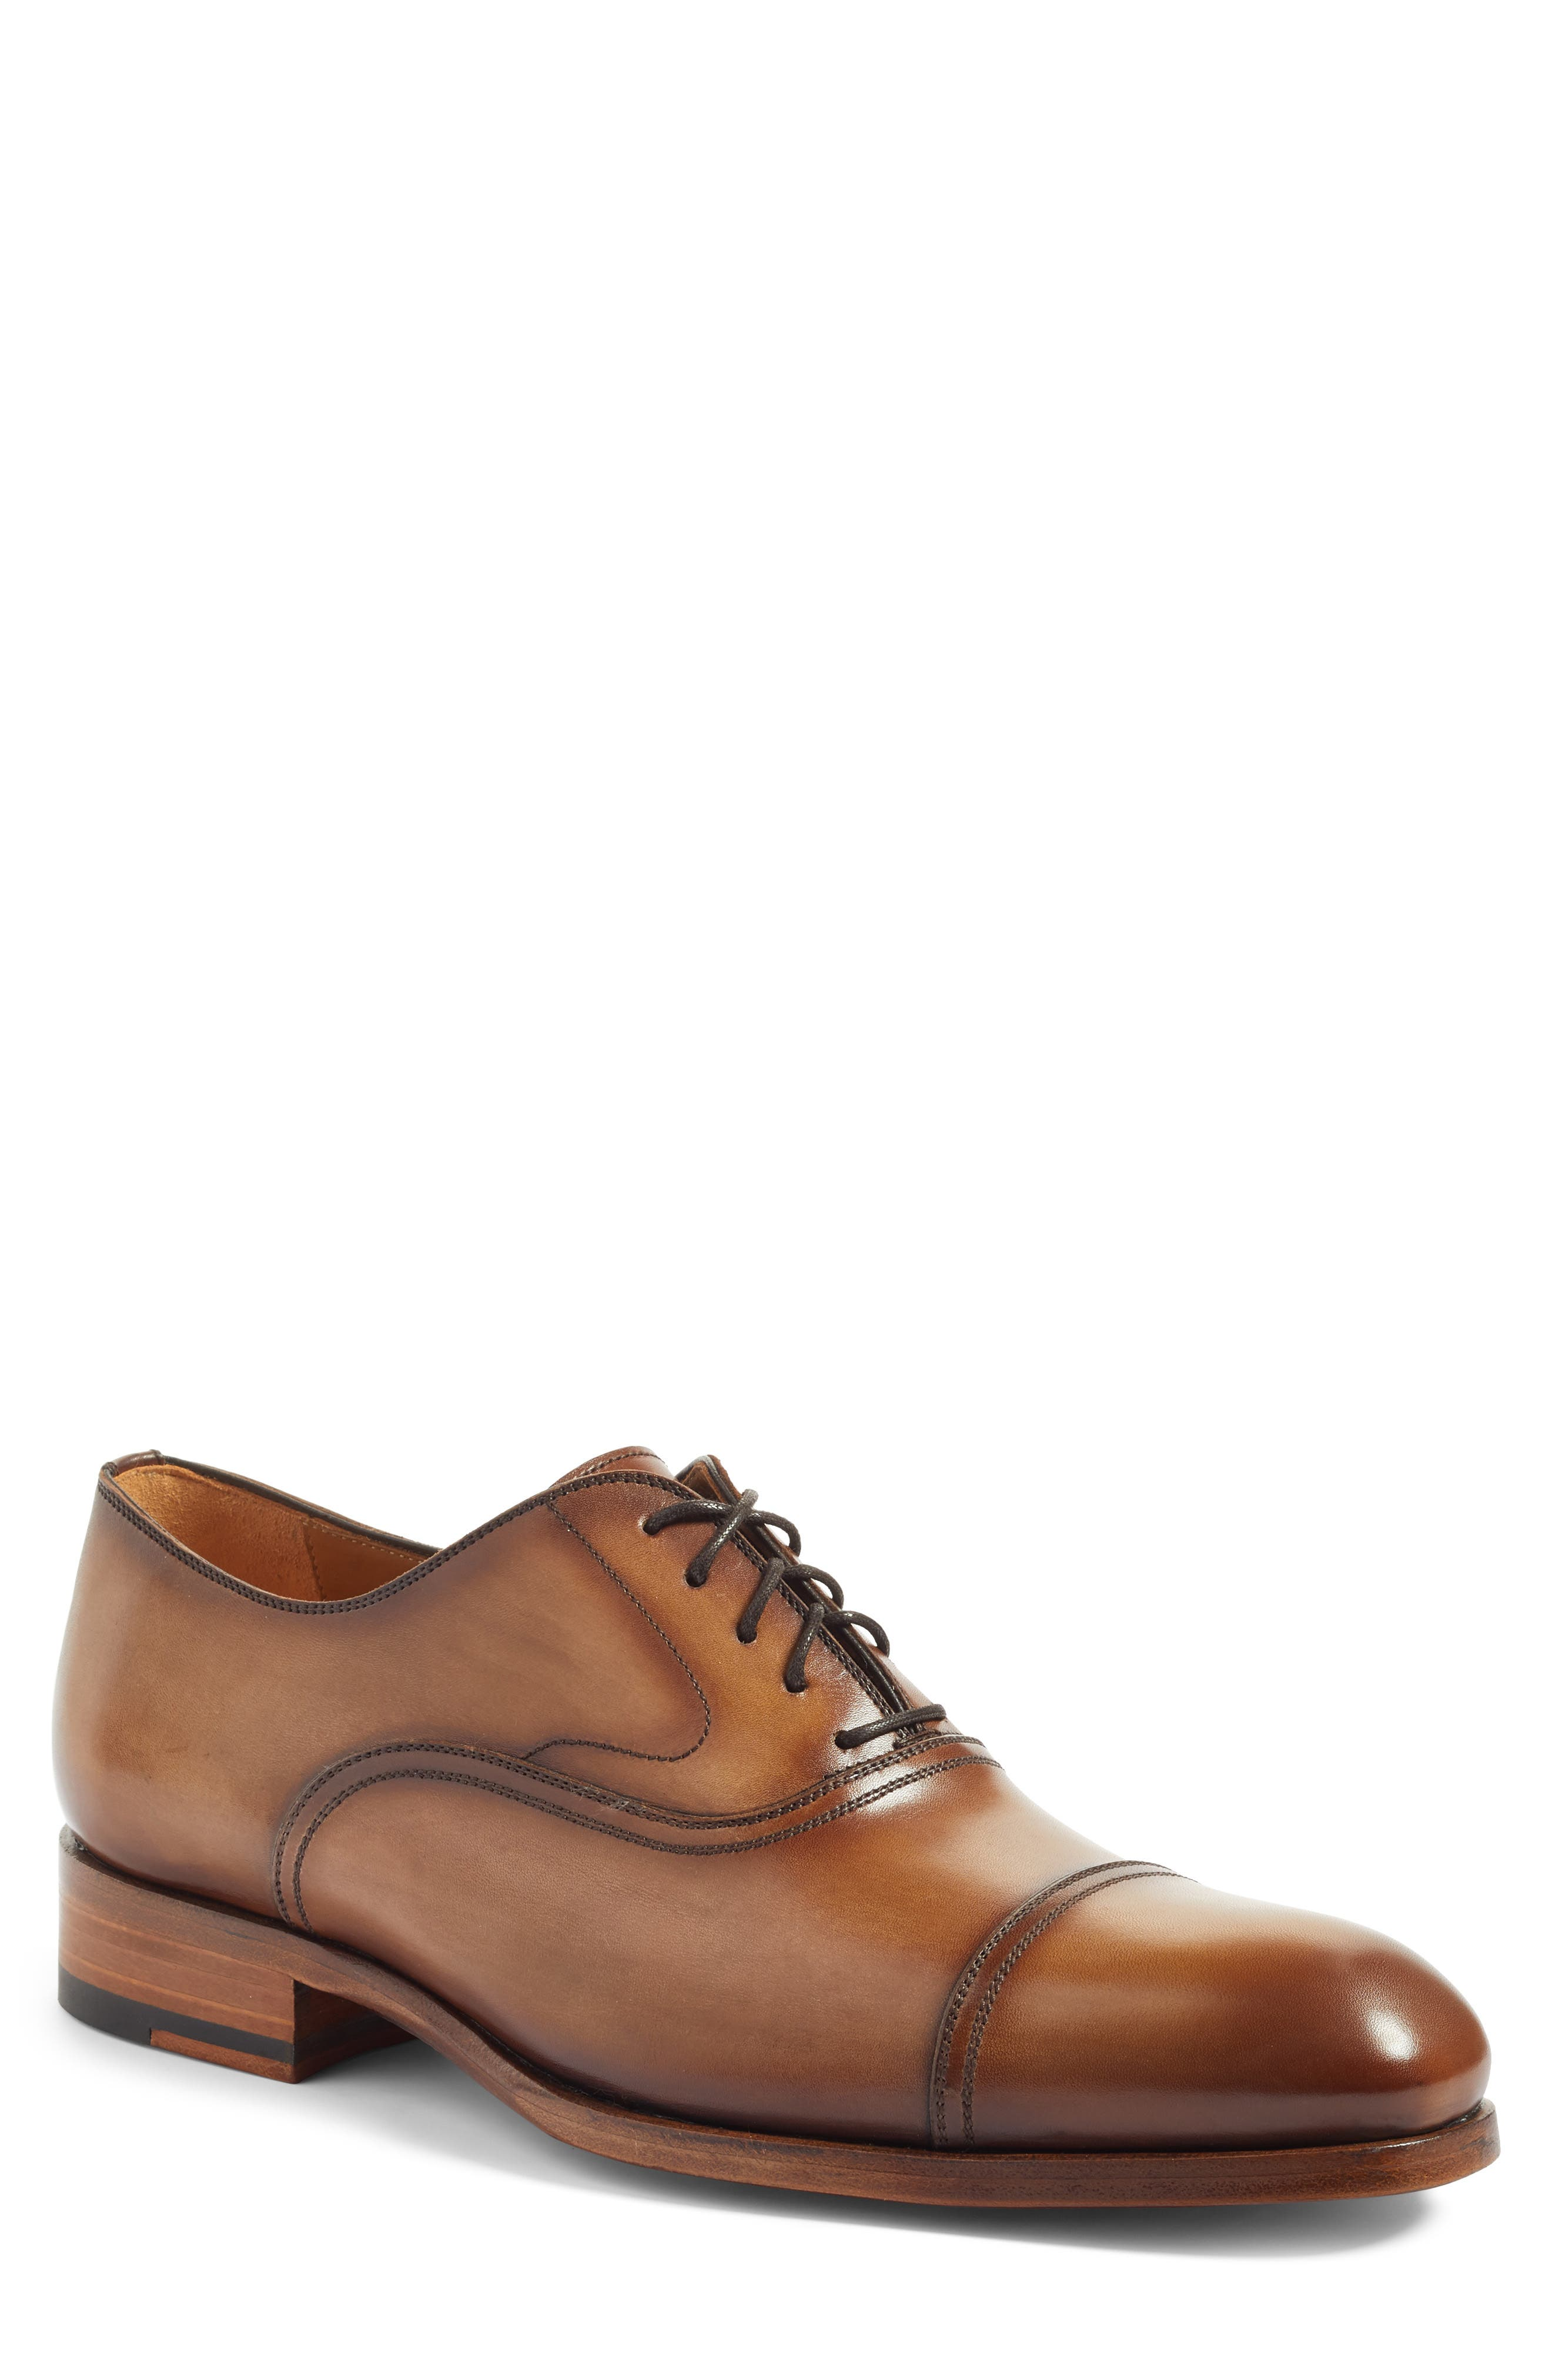 Magnanni Torres Cap Toe Oxford (Men)